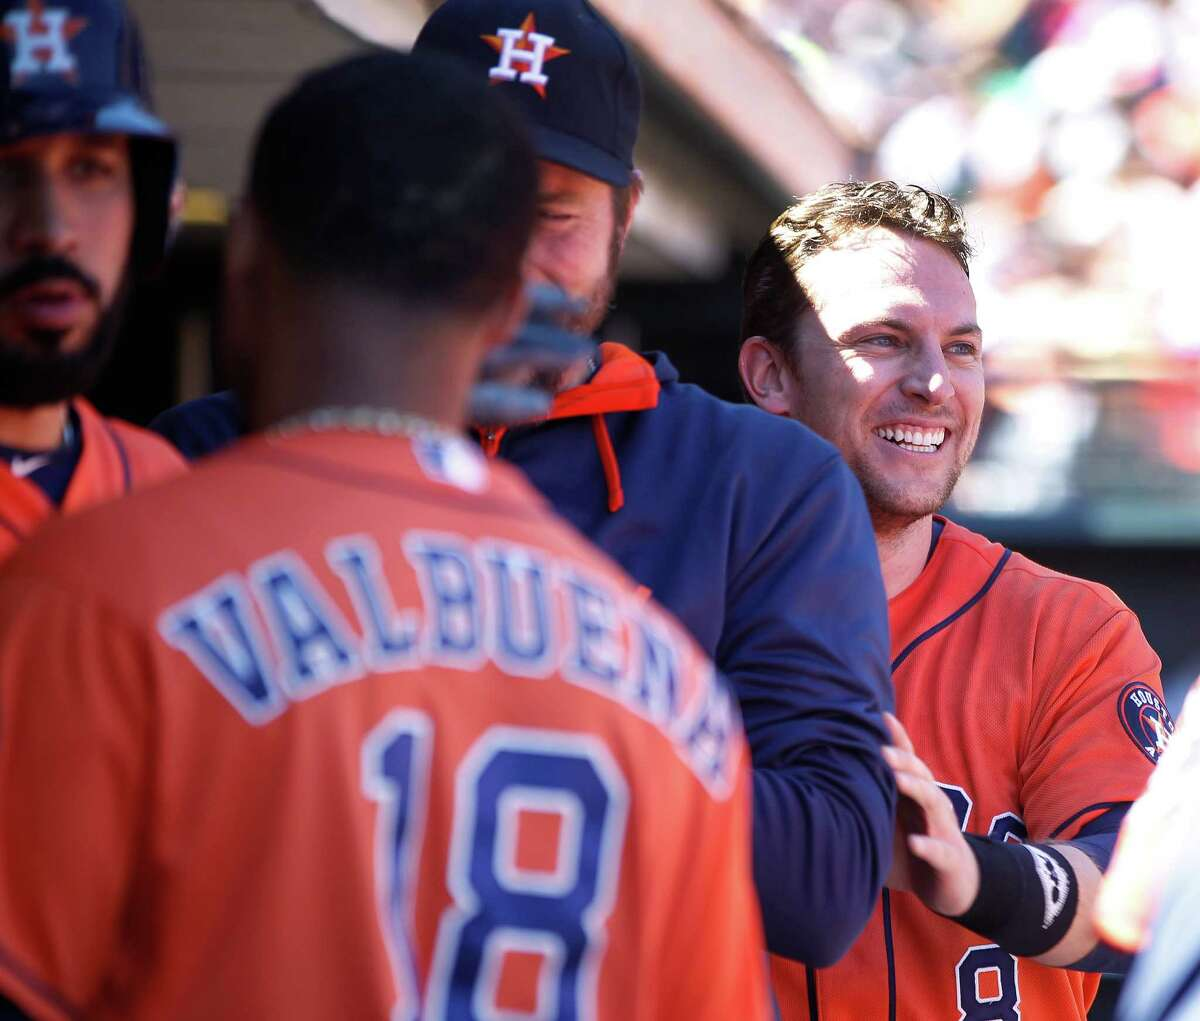 Shortstop Jed Lowrie, right, gave the Astros more than enough insurance with a solo home run in the eighth inning to extend the lead, and ultimately the final score, to 2-0 against the Giants on Wednesday in San Francisco.